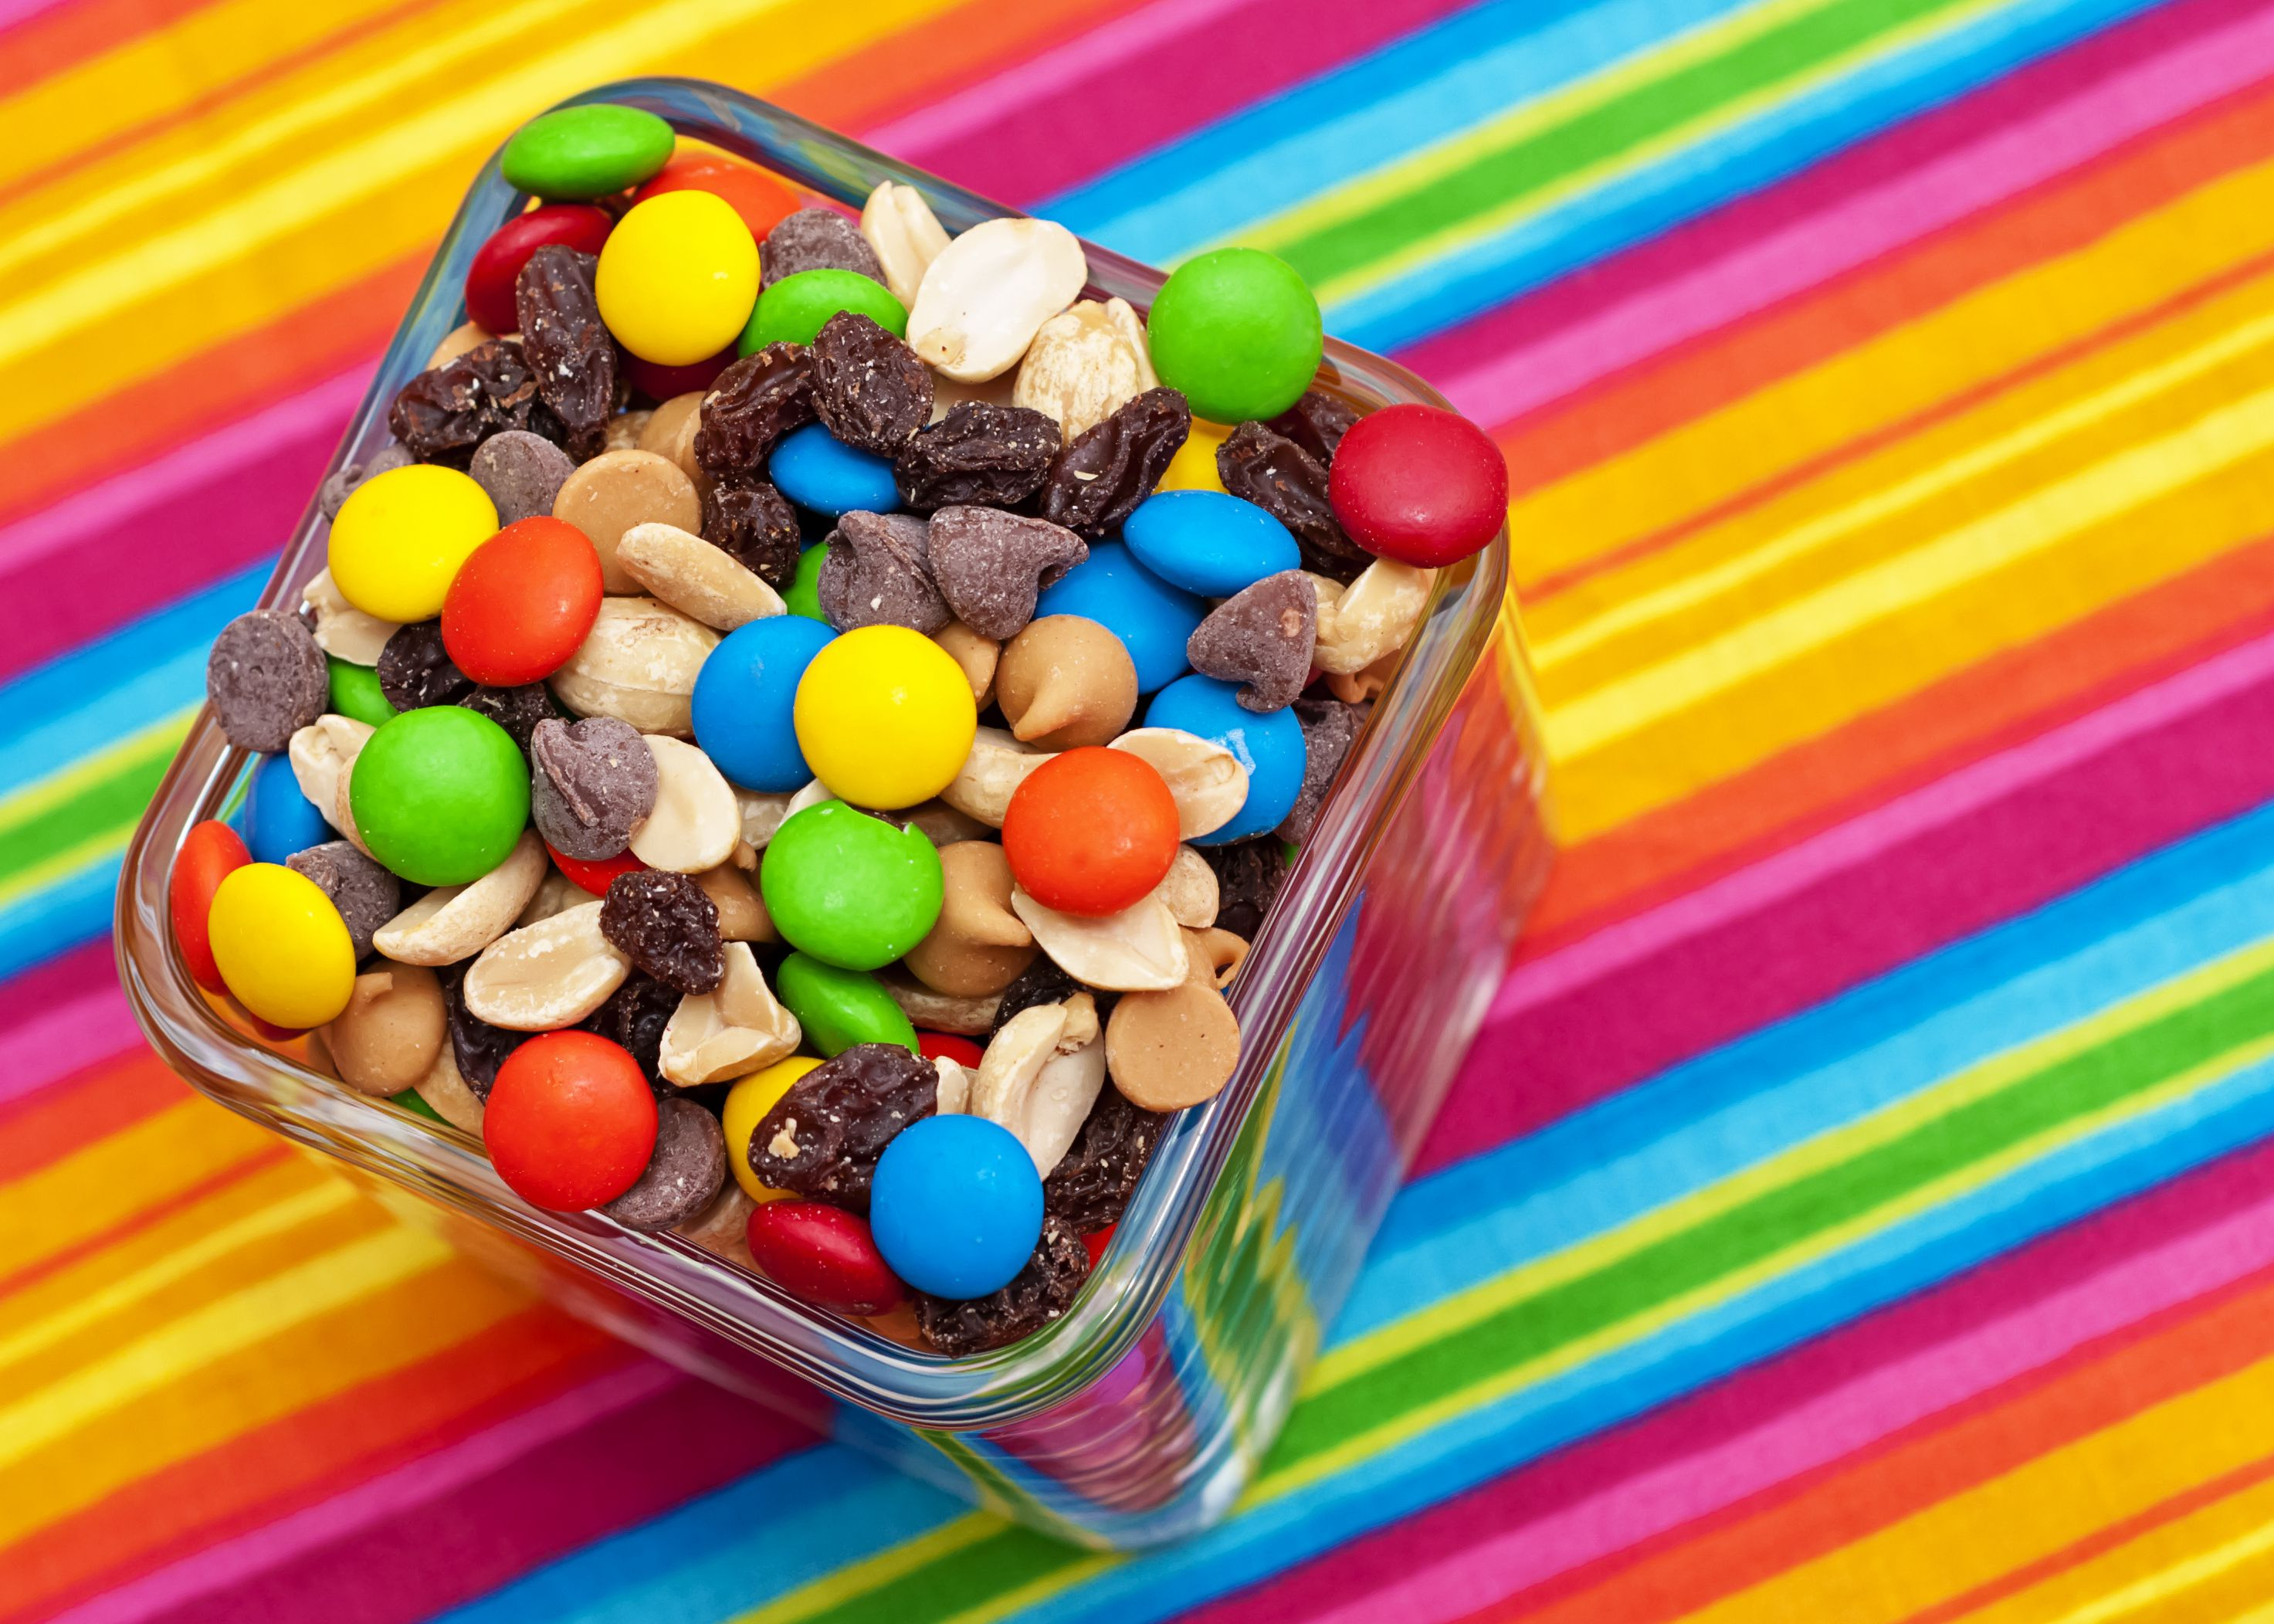 Here Are Some Great Snacks Ideas For Your Afternoon Business Meetings